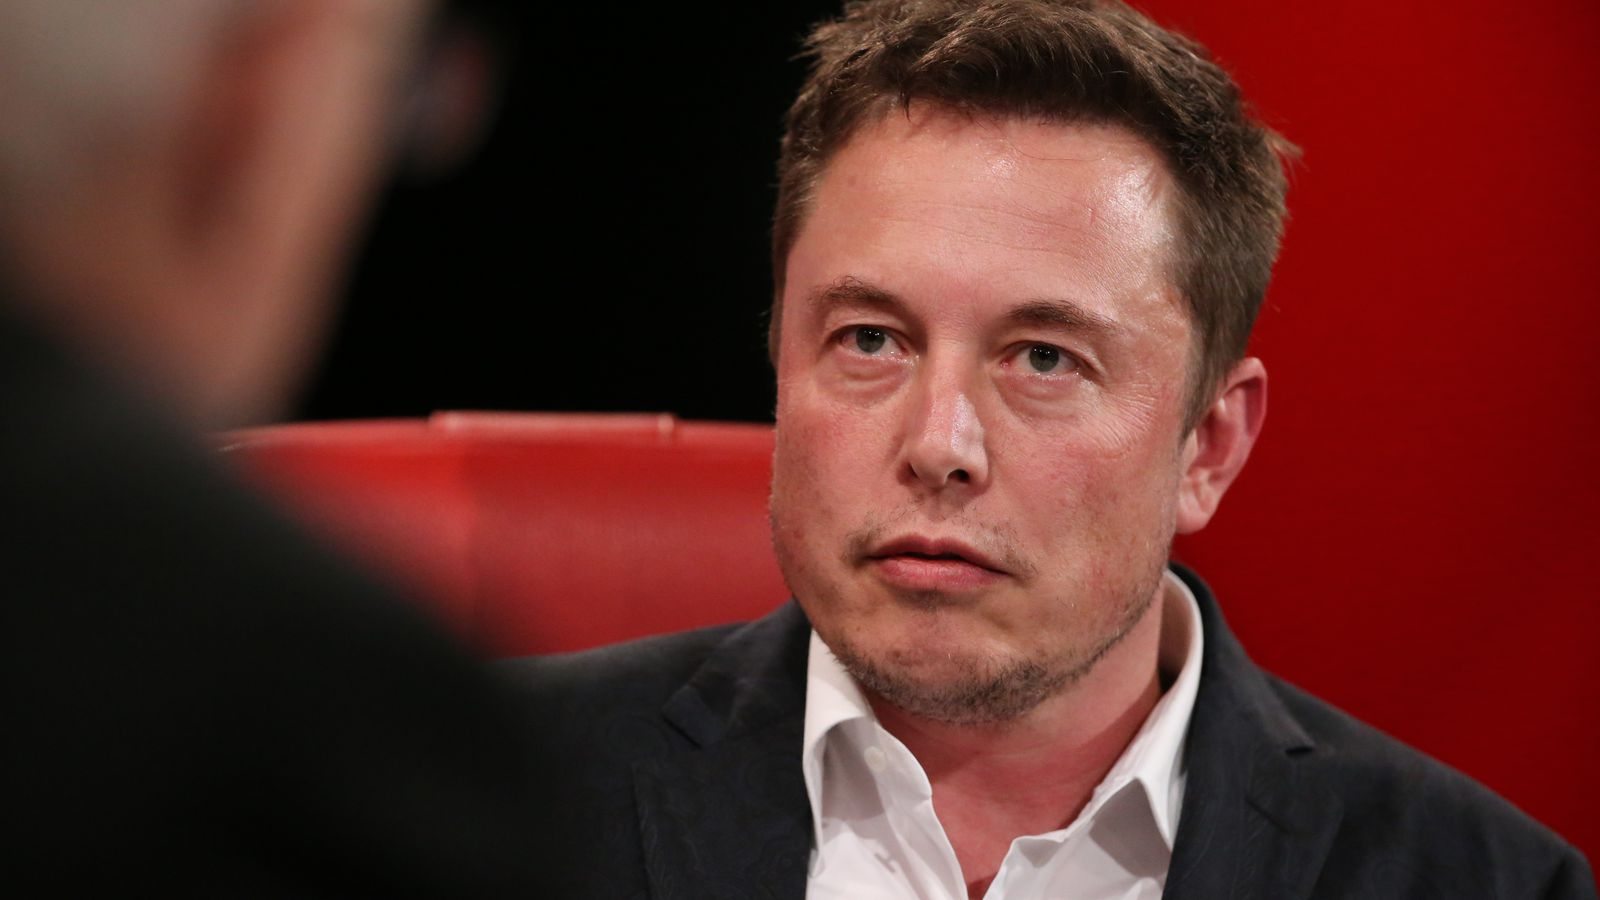 Elon Musk: negative media coverage of autonomous vehicles could be 'killing people' - The Verge